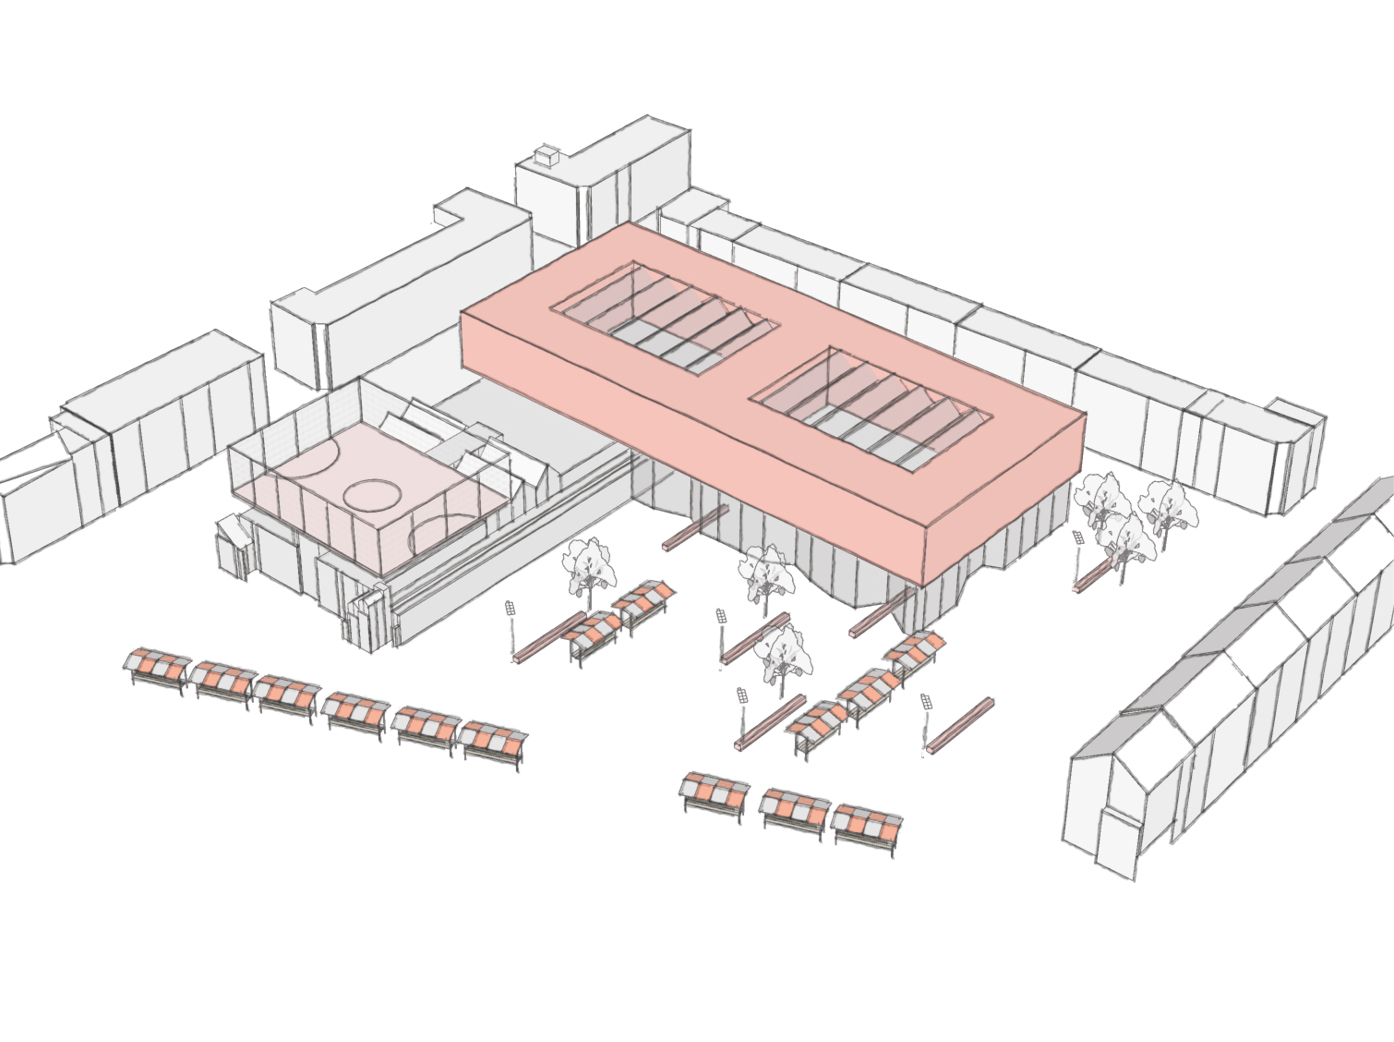 public building  - first sketches of 'Hart van BoTu' as part of the design research